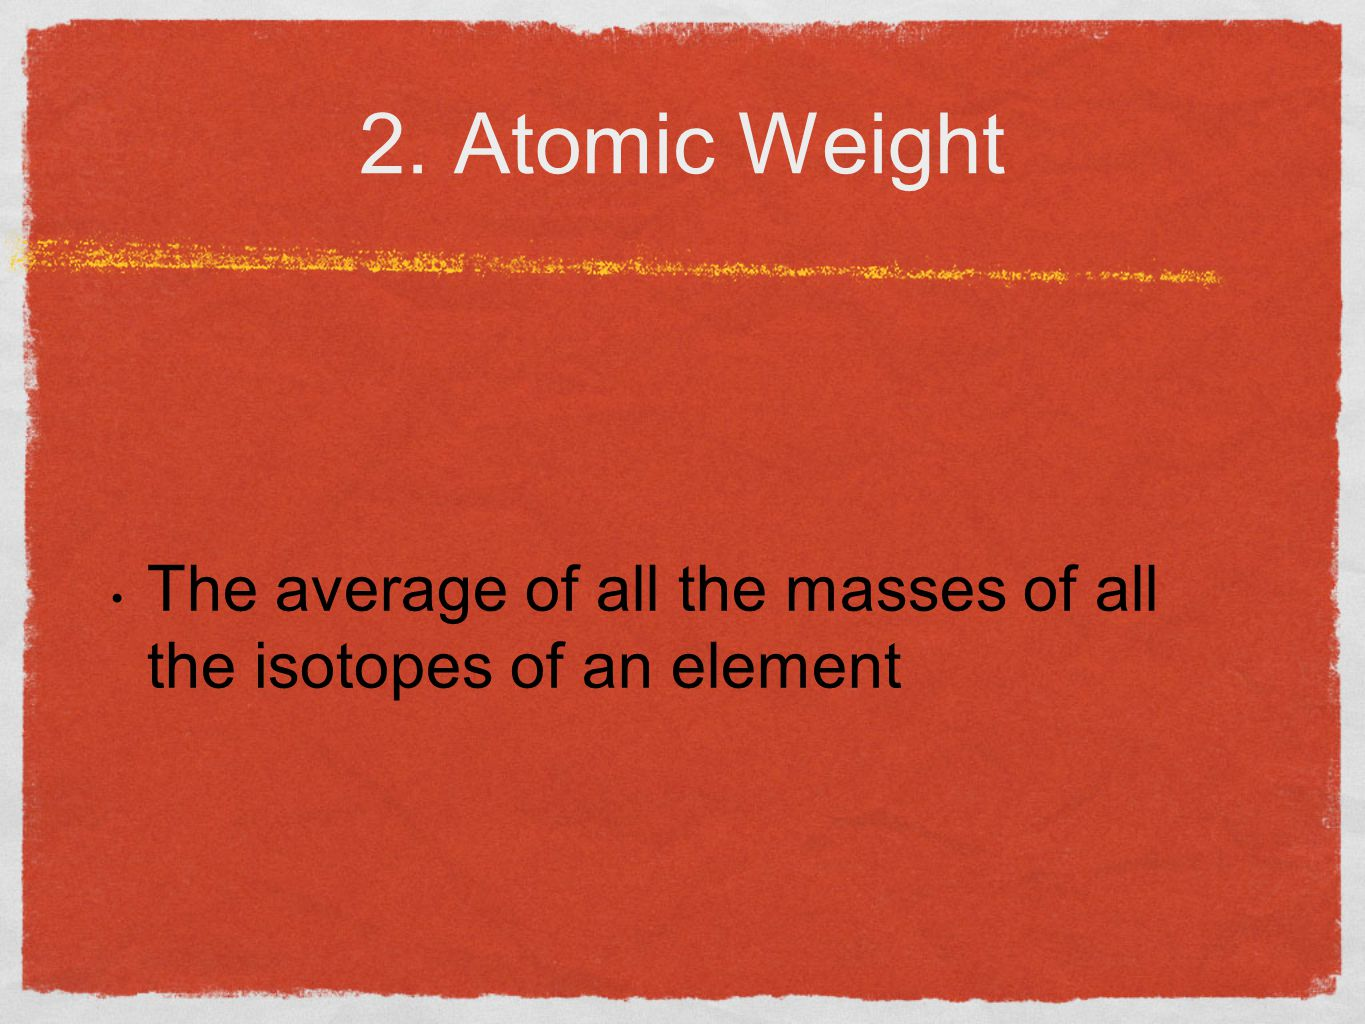 2. Atomic Weight The average of all the masses of all the isotopes of an element